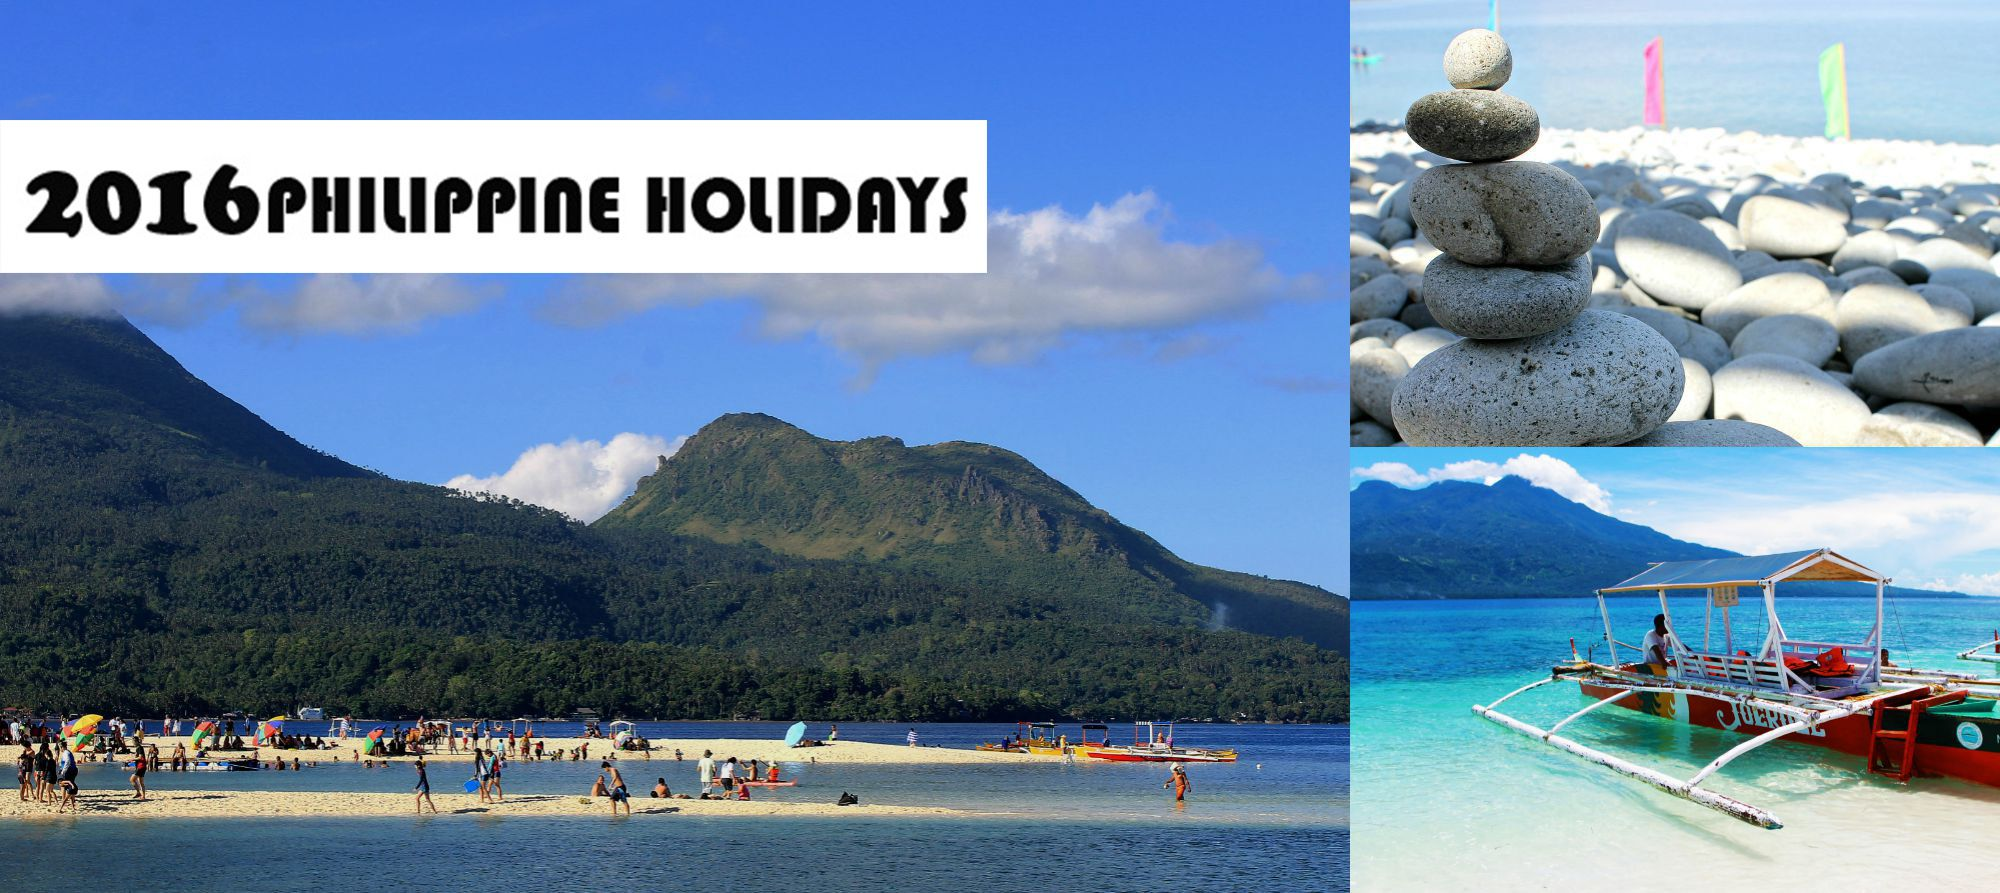 Traveling Morion   Let's explore 7107 Islands: Travel Notes   List of Philippine Holidays in 2016...